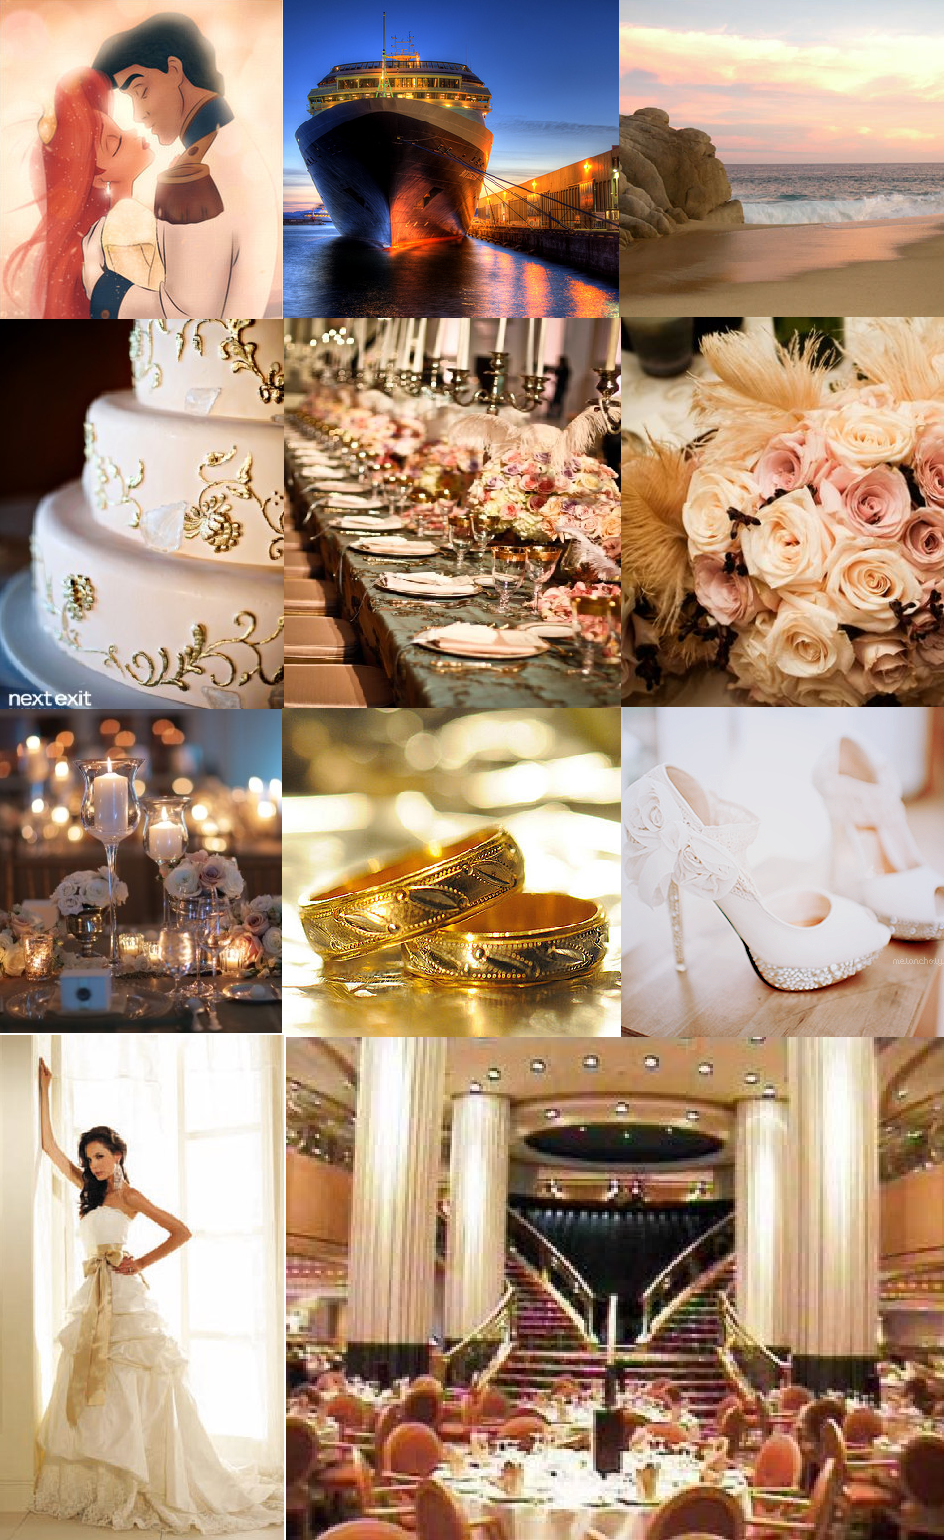 A Magical Wedding Guide The Little Mermaid Wedding Theme Inspiration